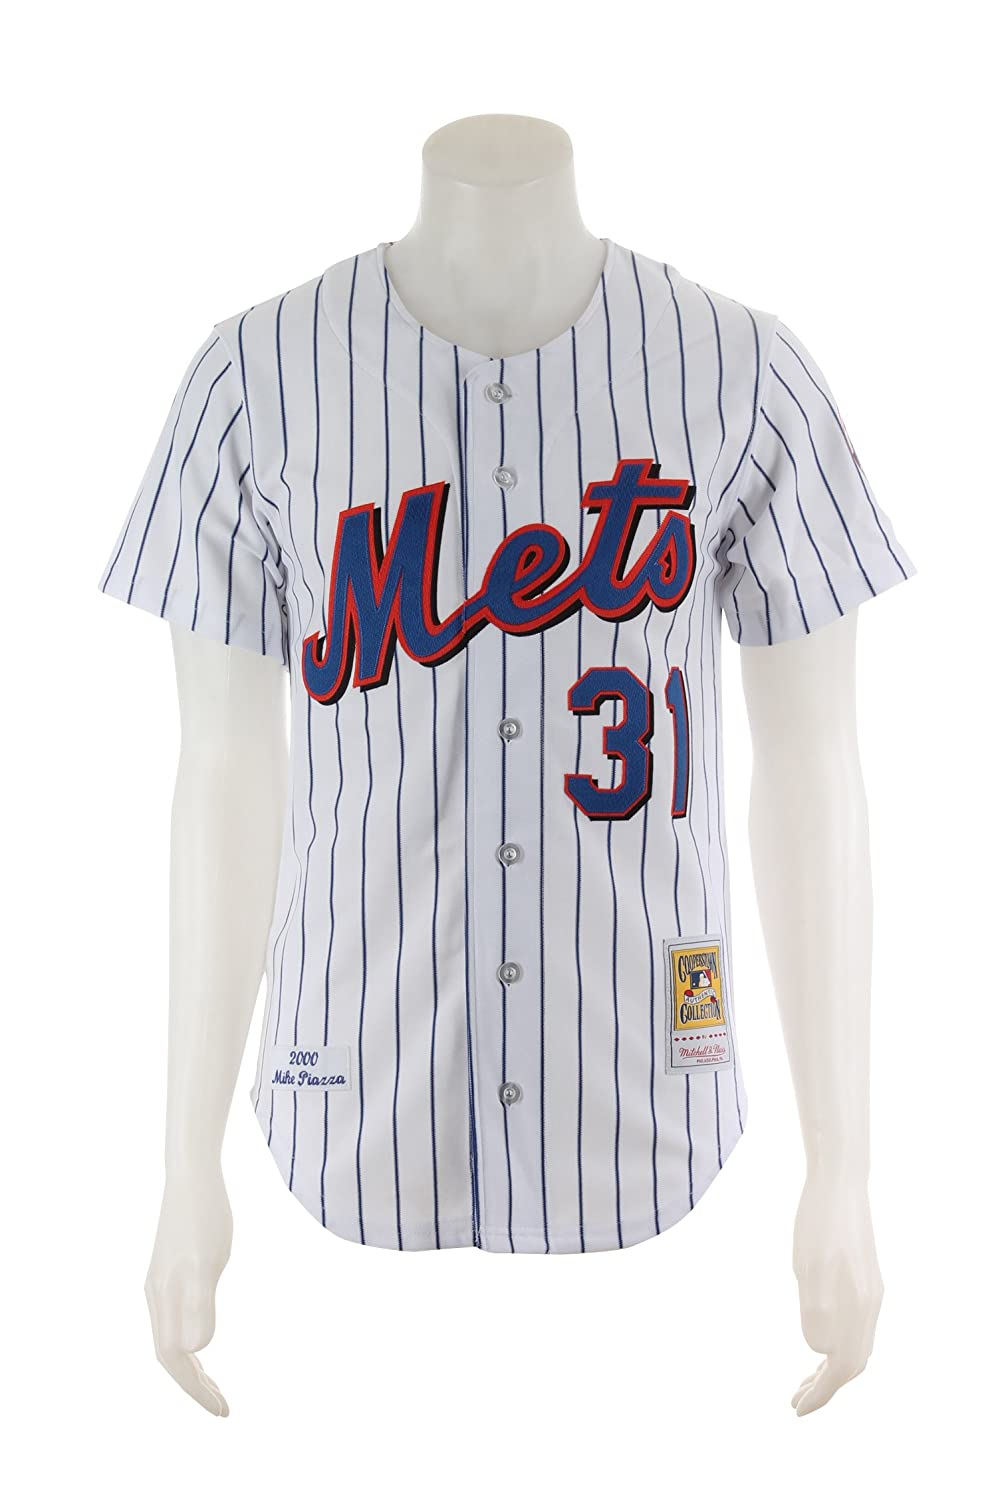 detailed look fa18c ed74c Amazon.com : Mitchell & Ness Mike Piazza New York Mets ...